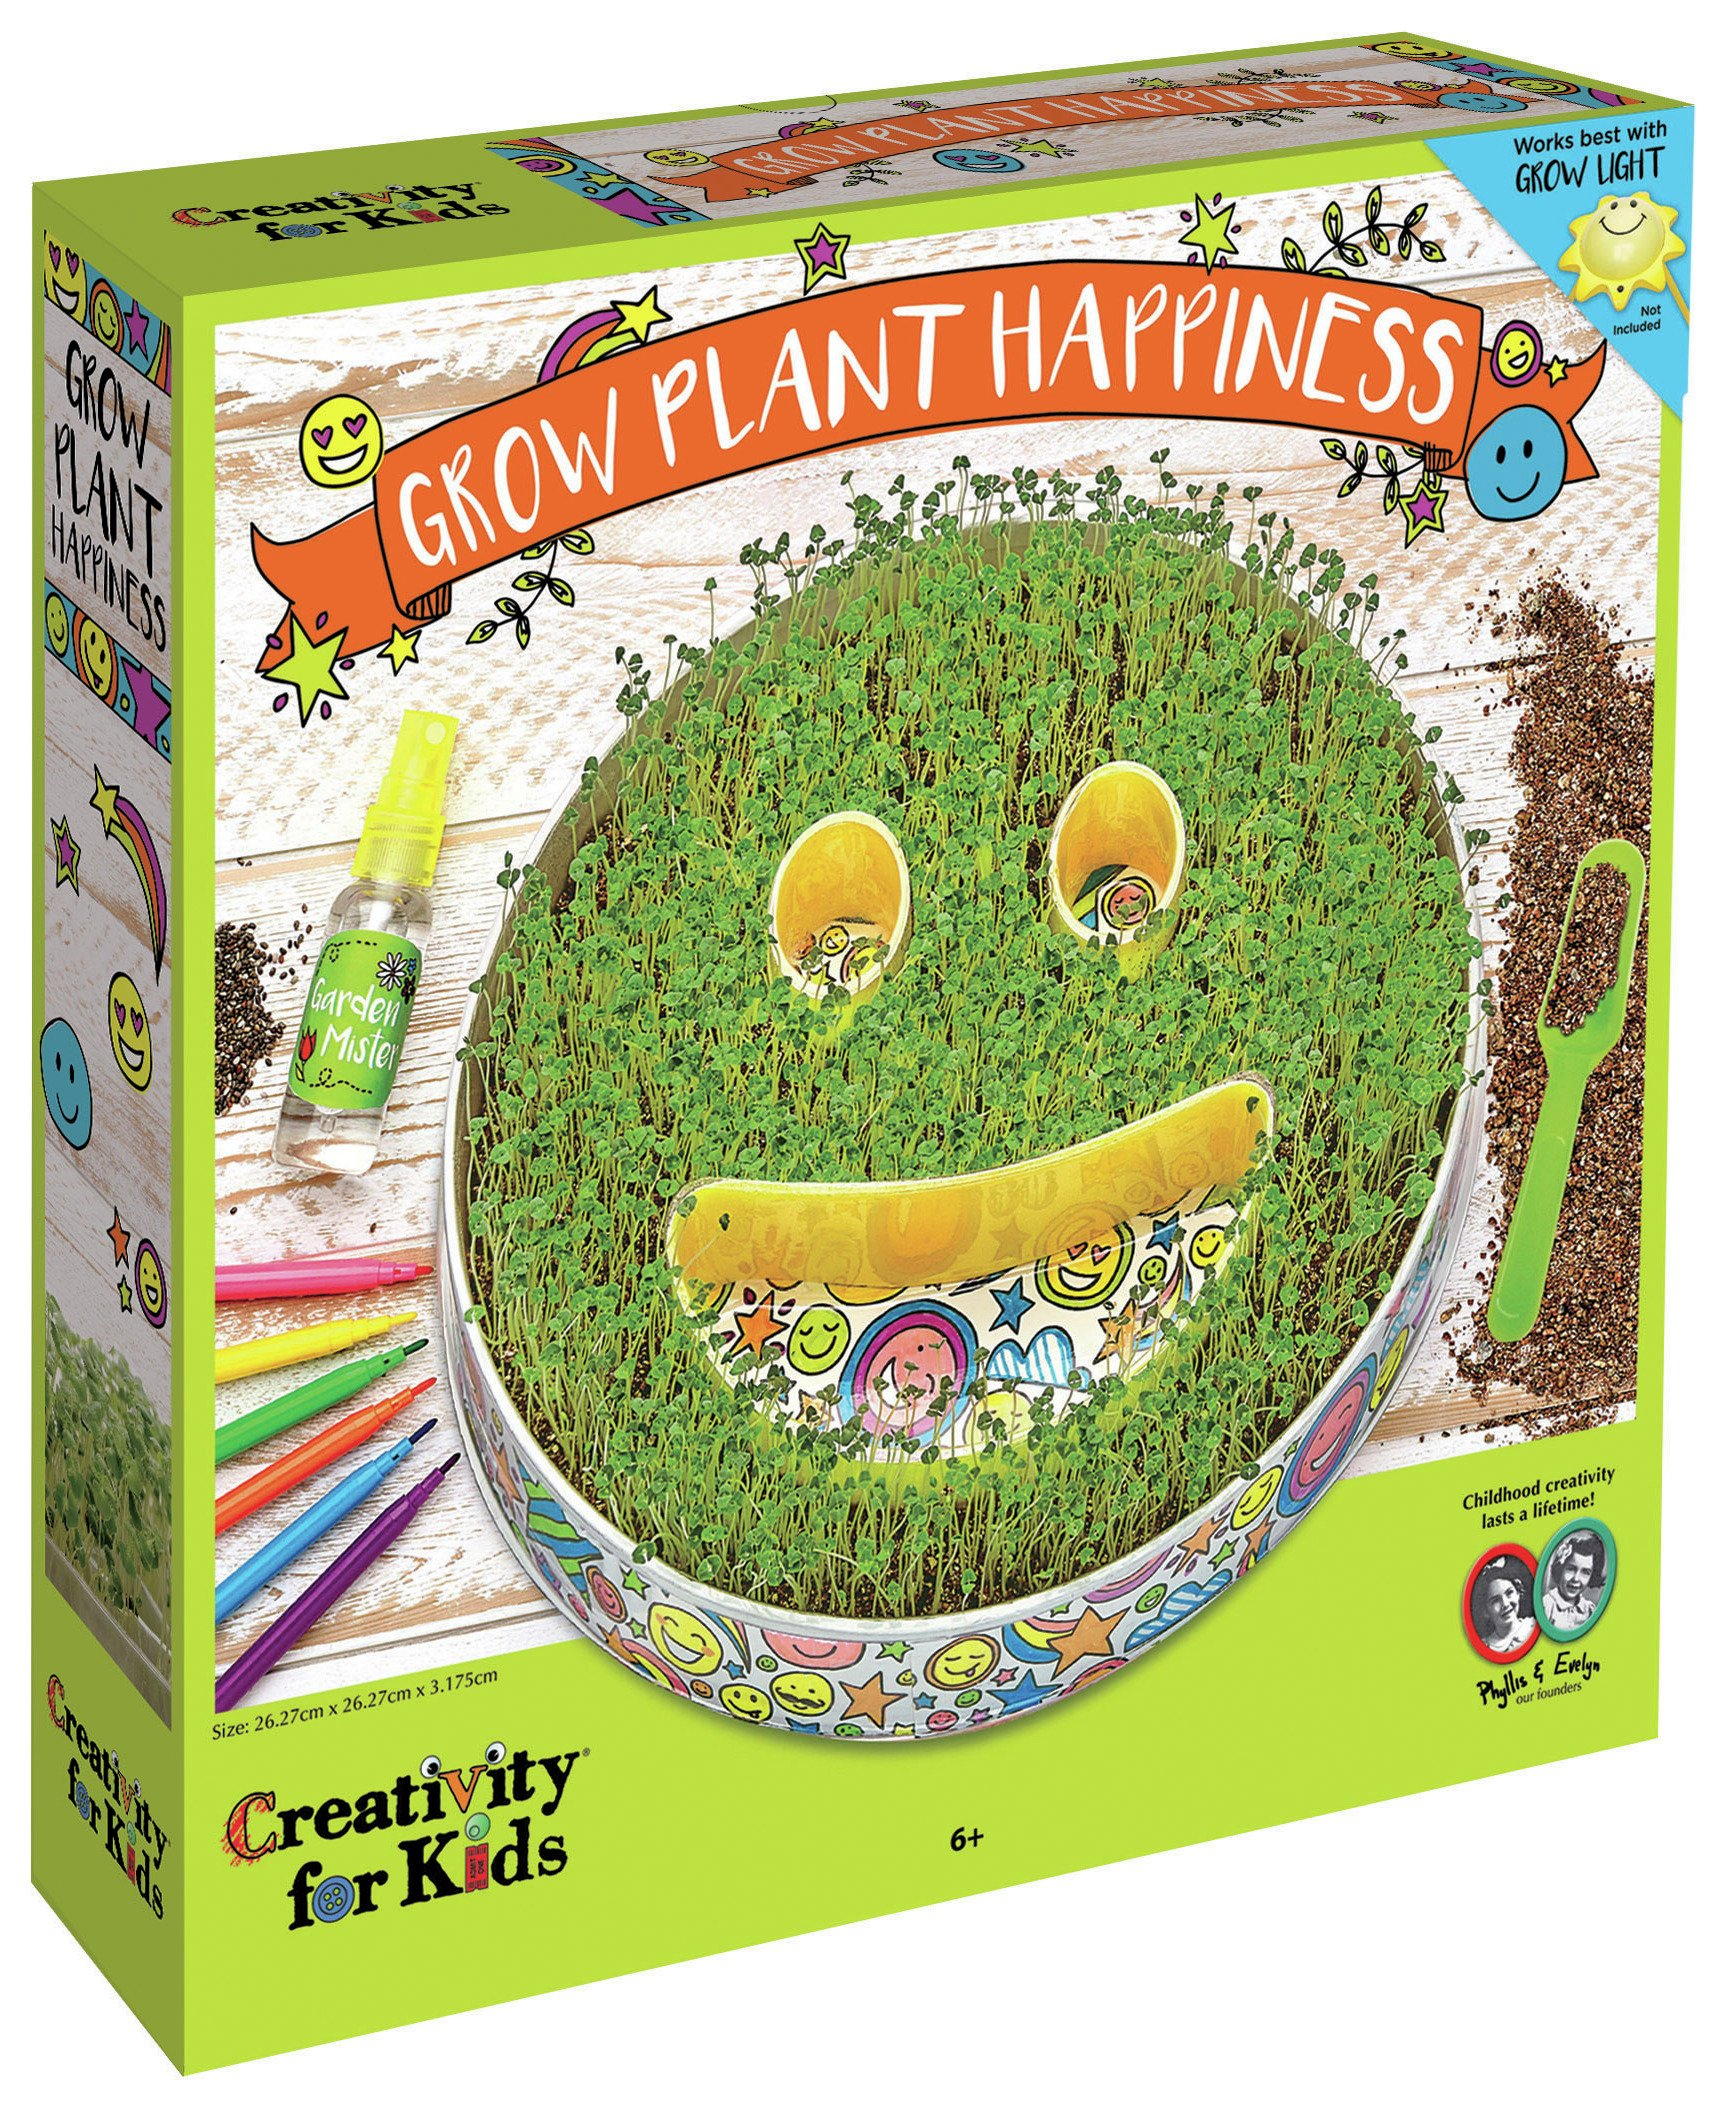 Image of Creativity for Kids GROW Plant Happiness Set.